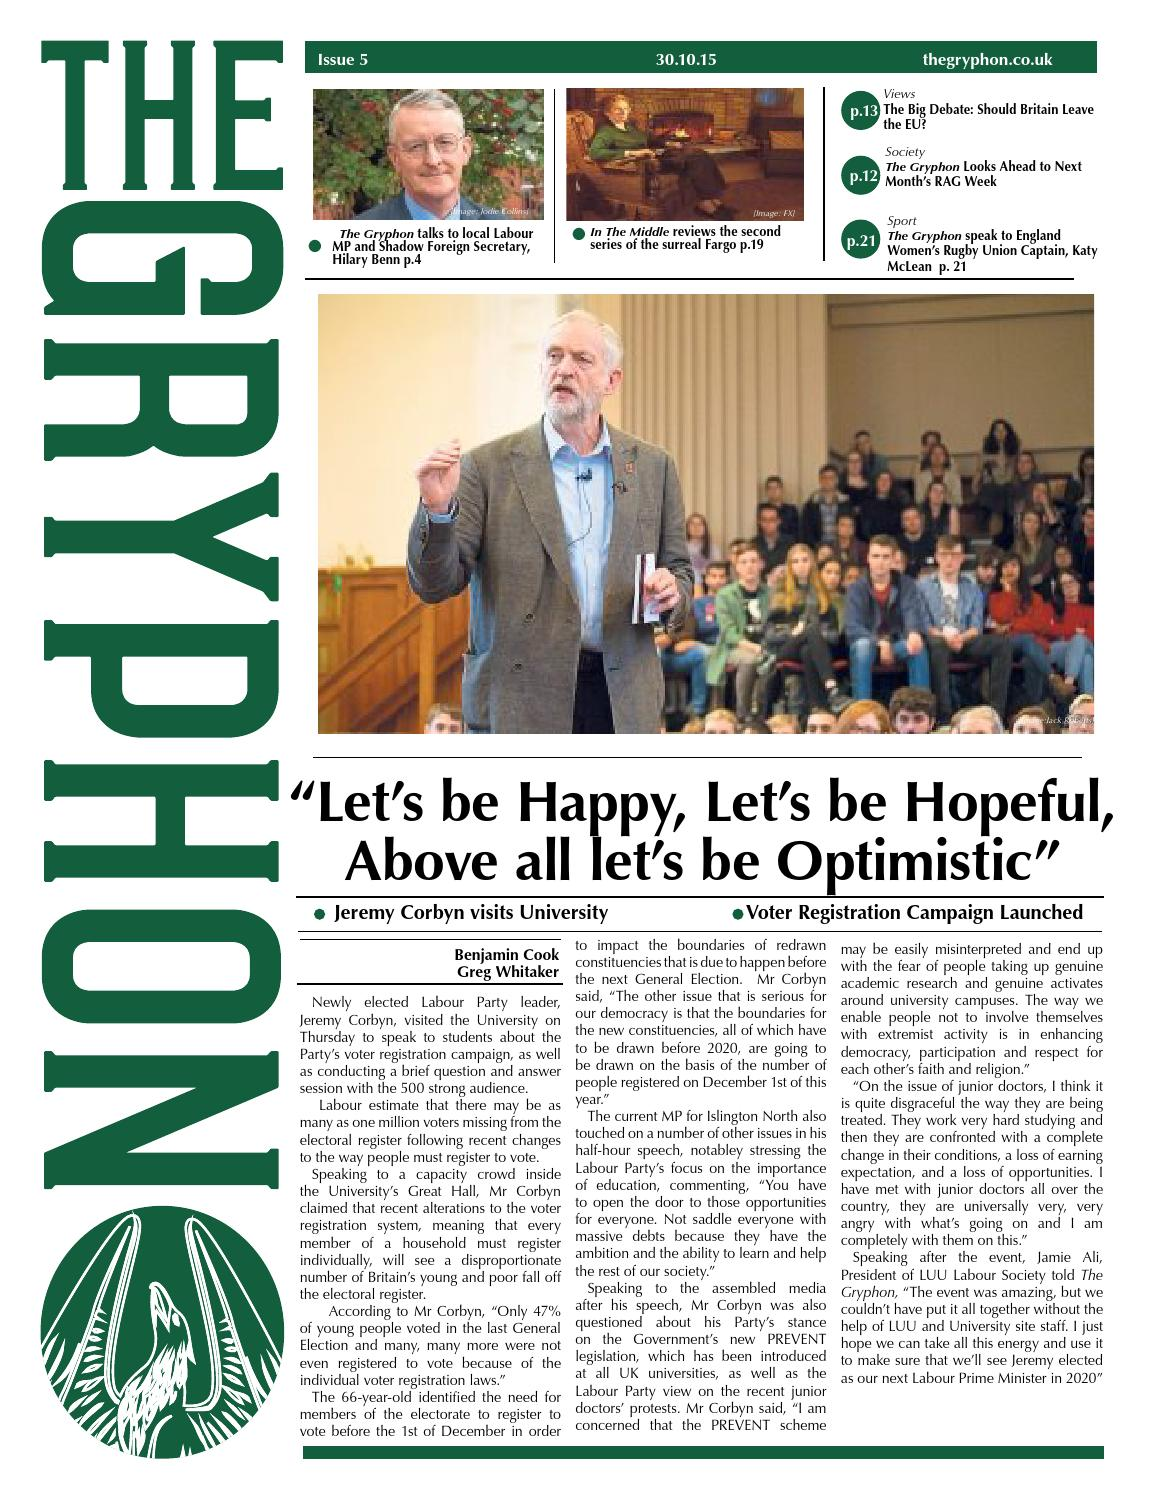 6628bba71e The Gryphon Issue 5 - 30/10/2015 by The Gryphon - issuu